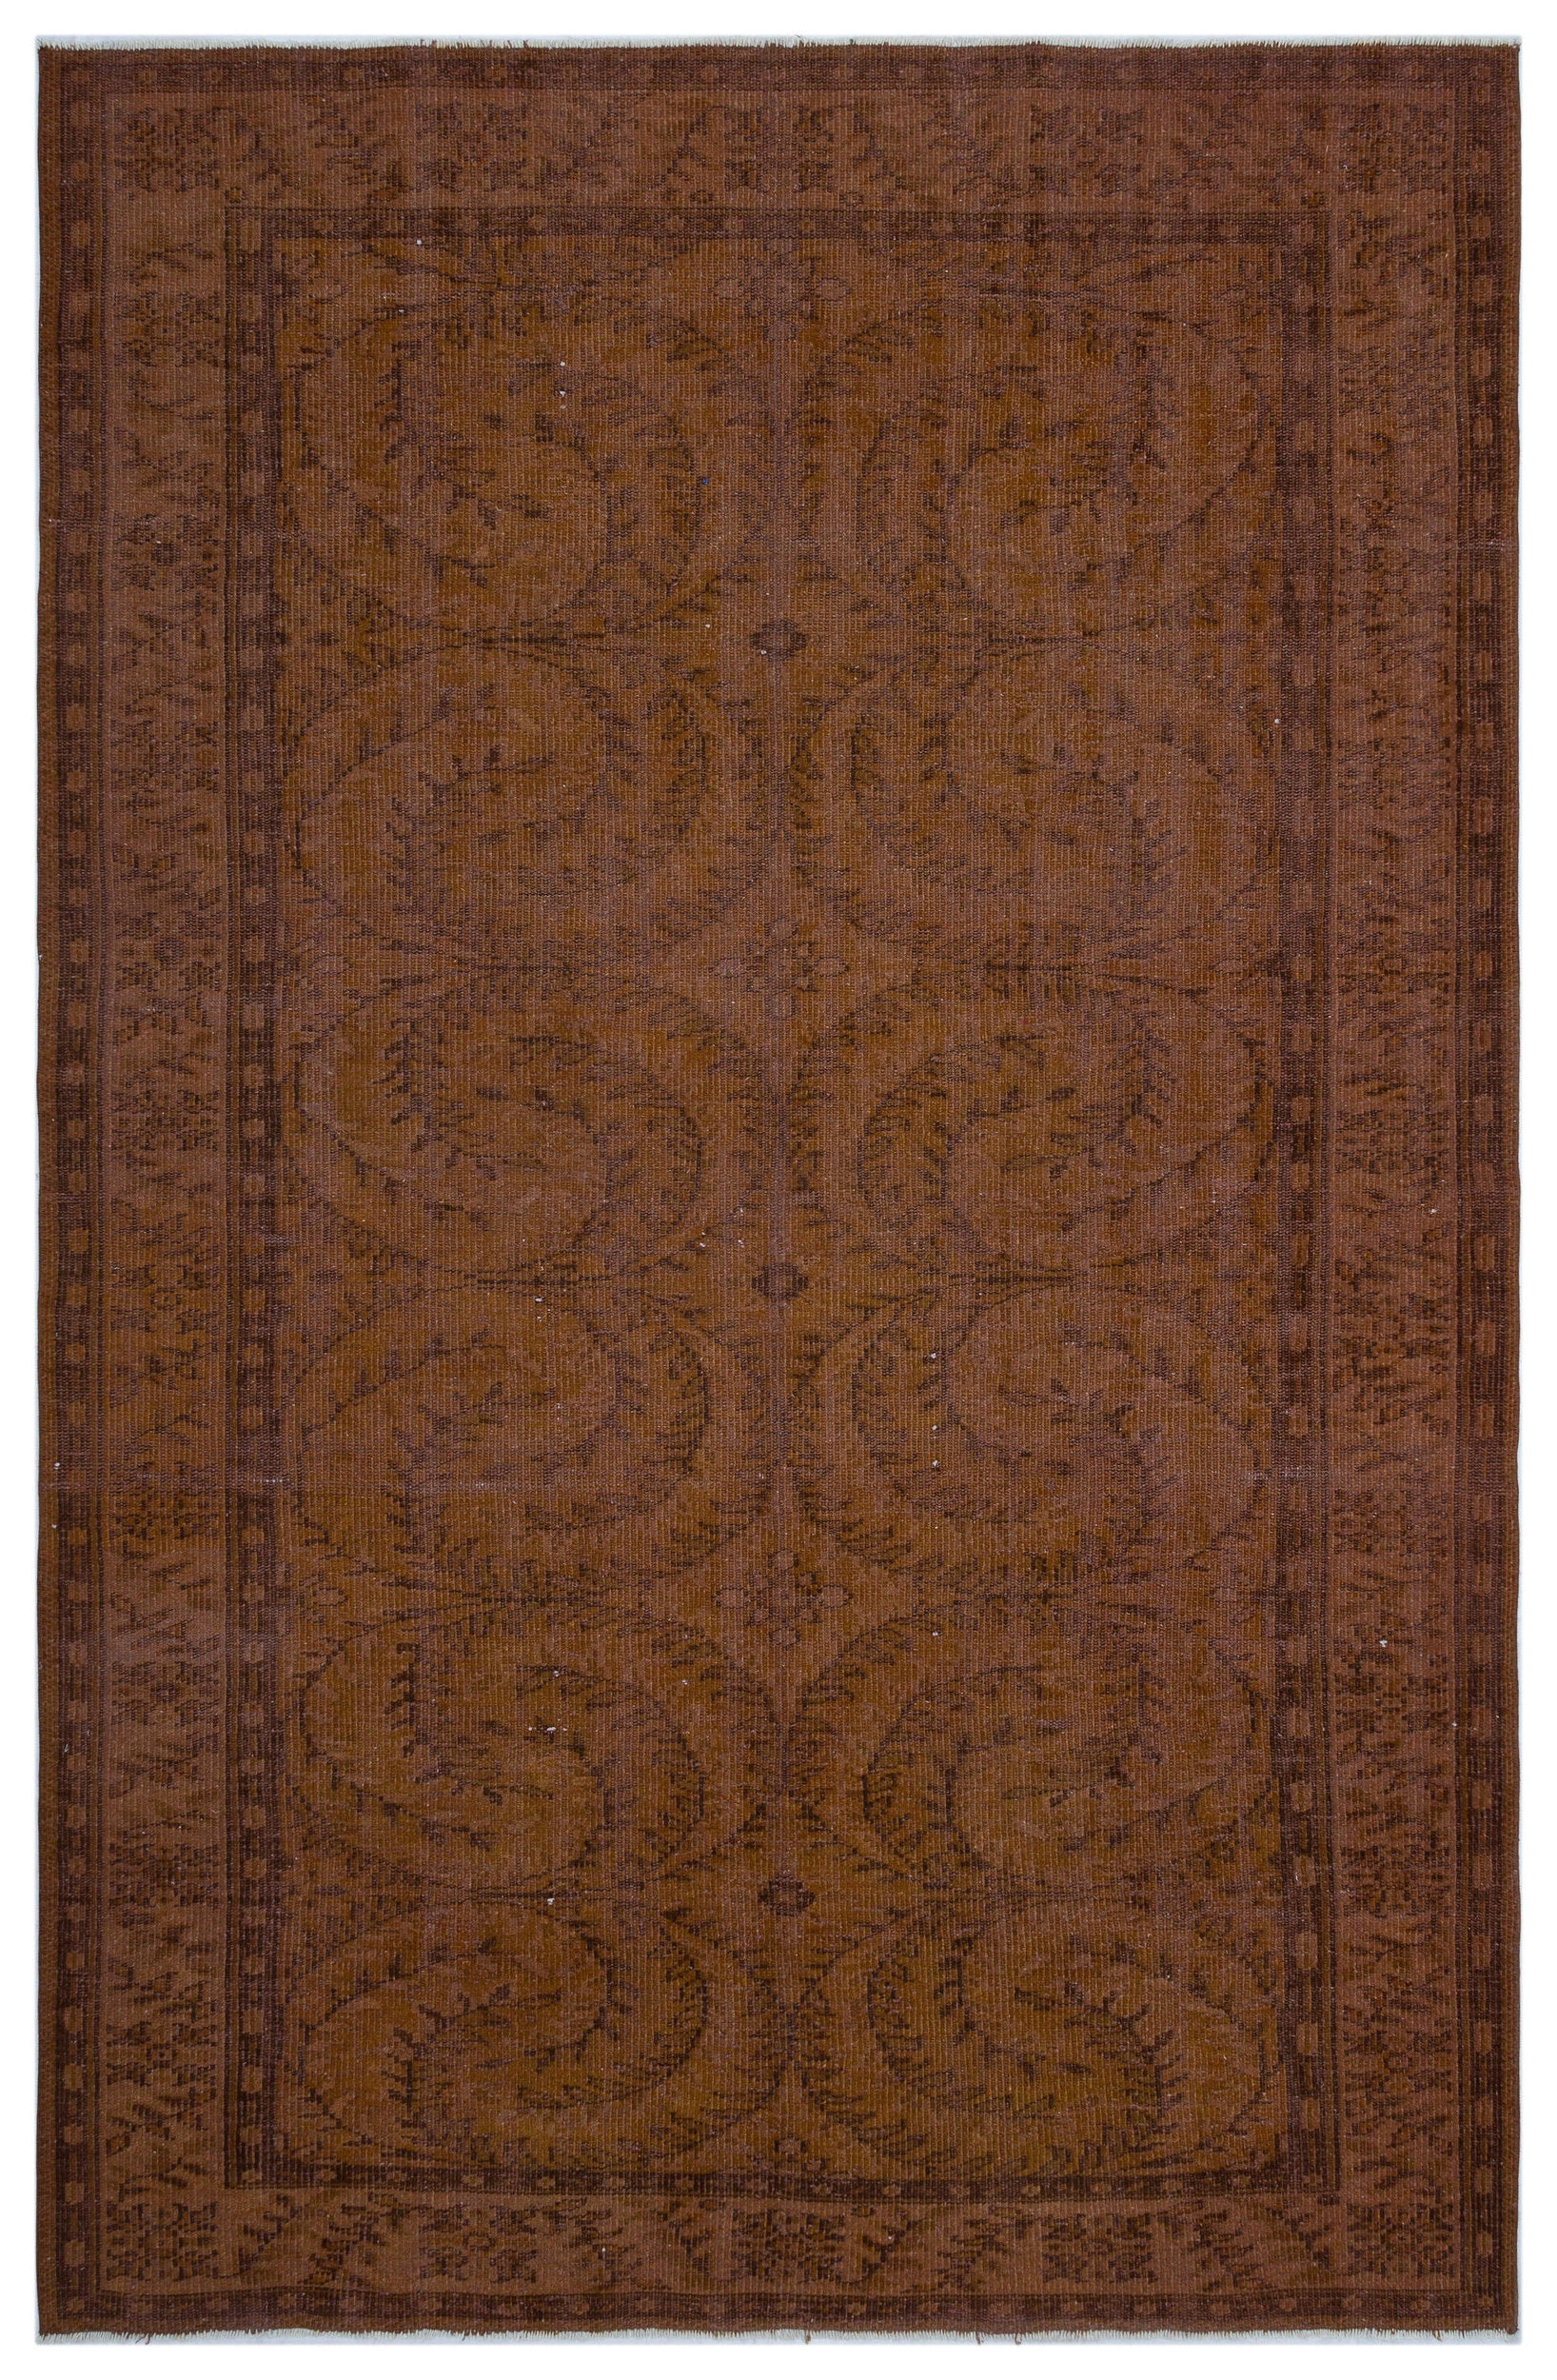 Brown Over Dyed Vintage Rug 6'4'' x 9'3'' ft 194 x 283 cm